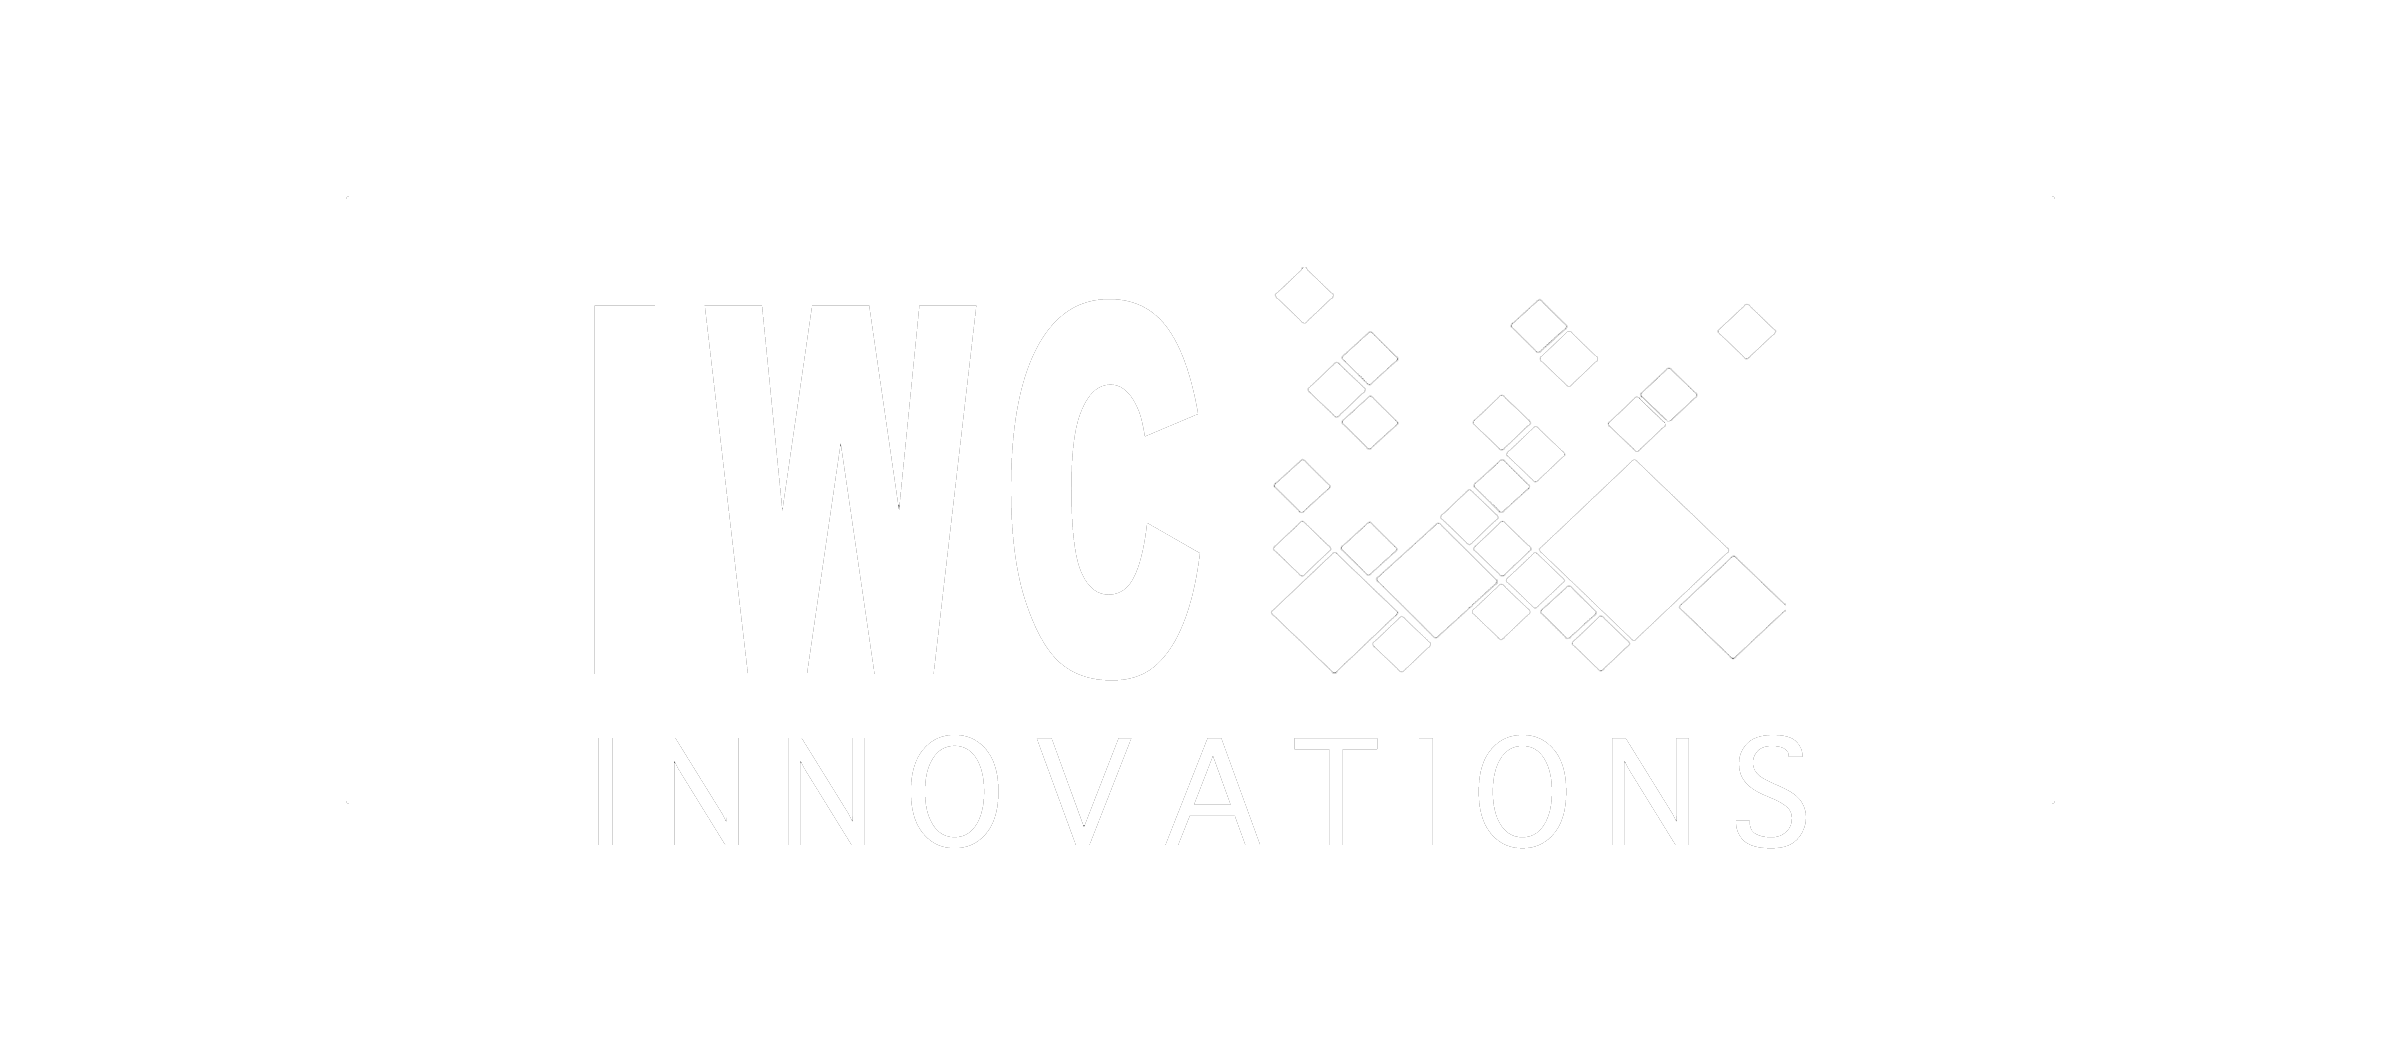 IWC Innovations